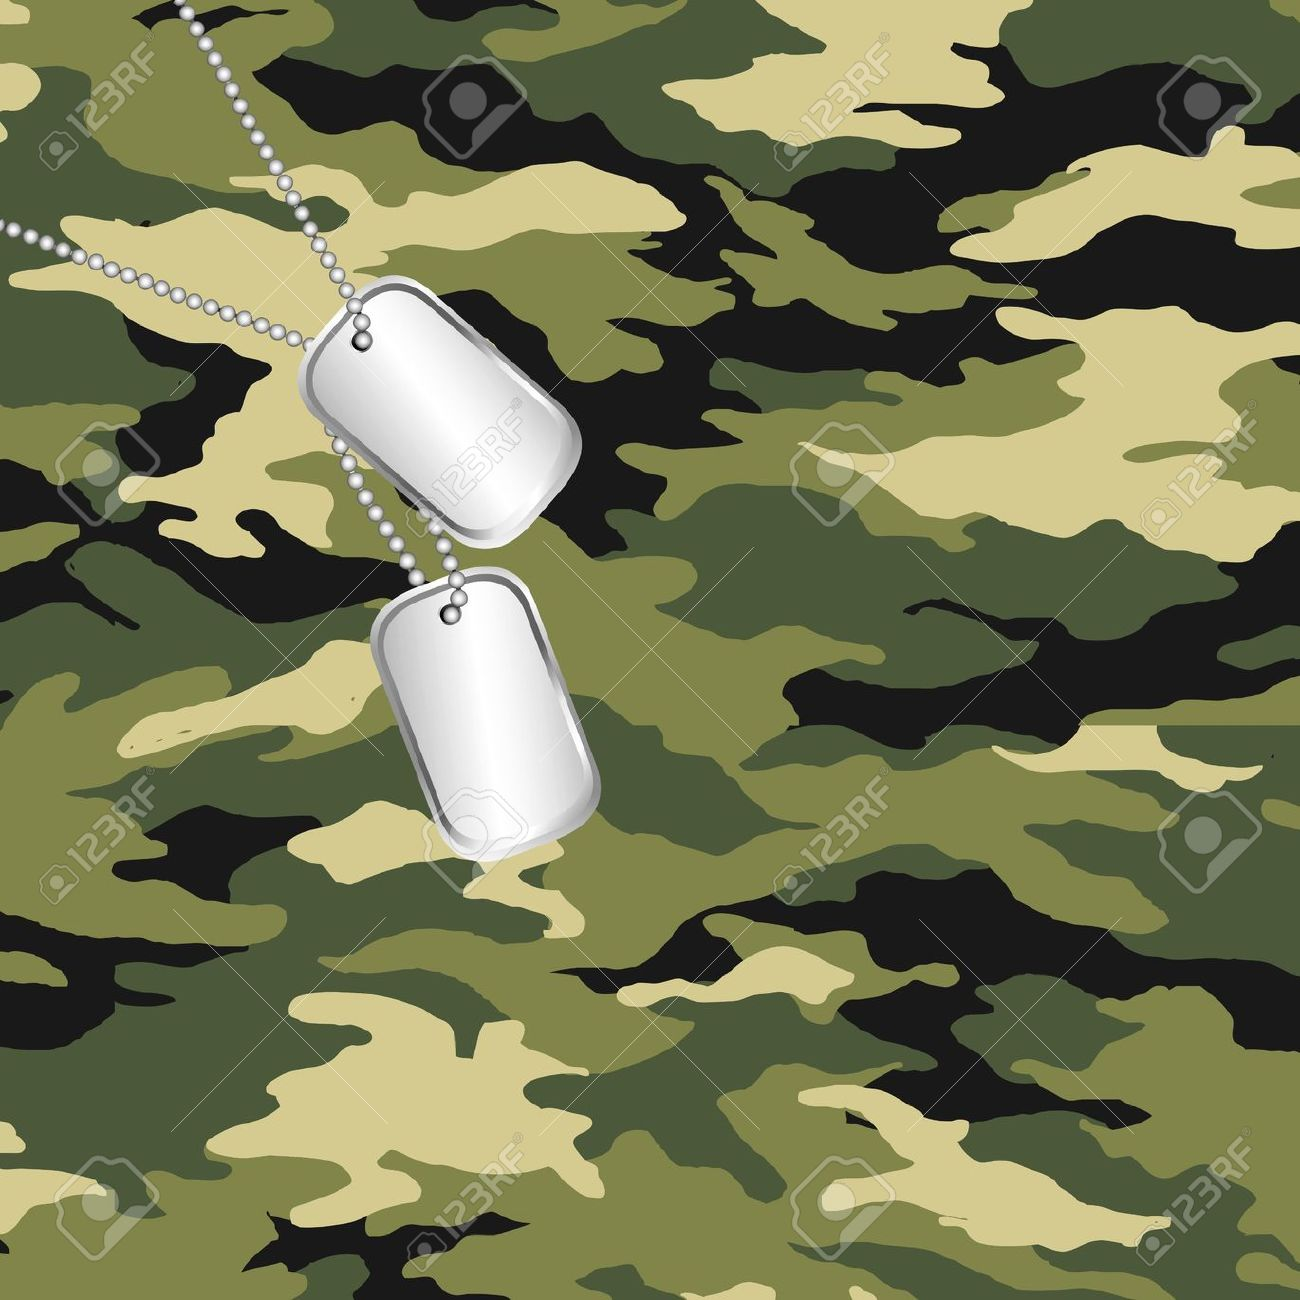 Best 58+ Military Graphic Backgrounds on HipWallpaper.